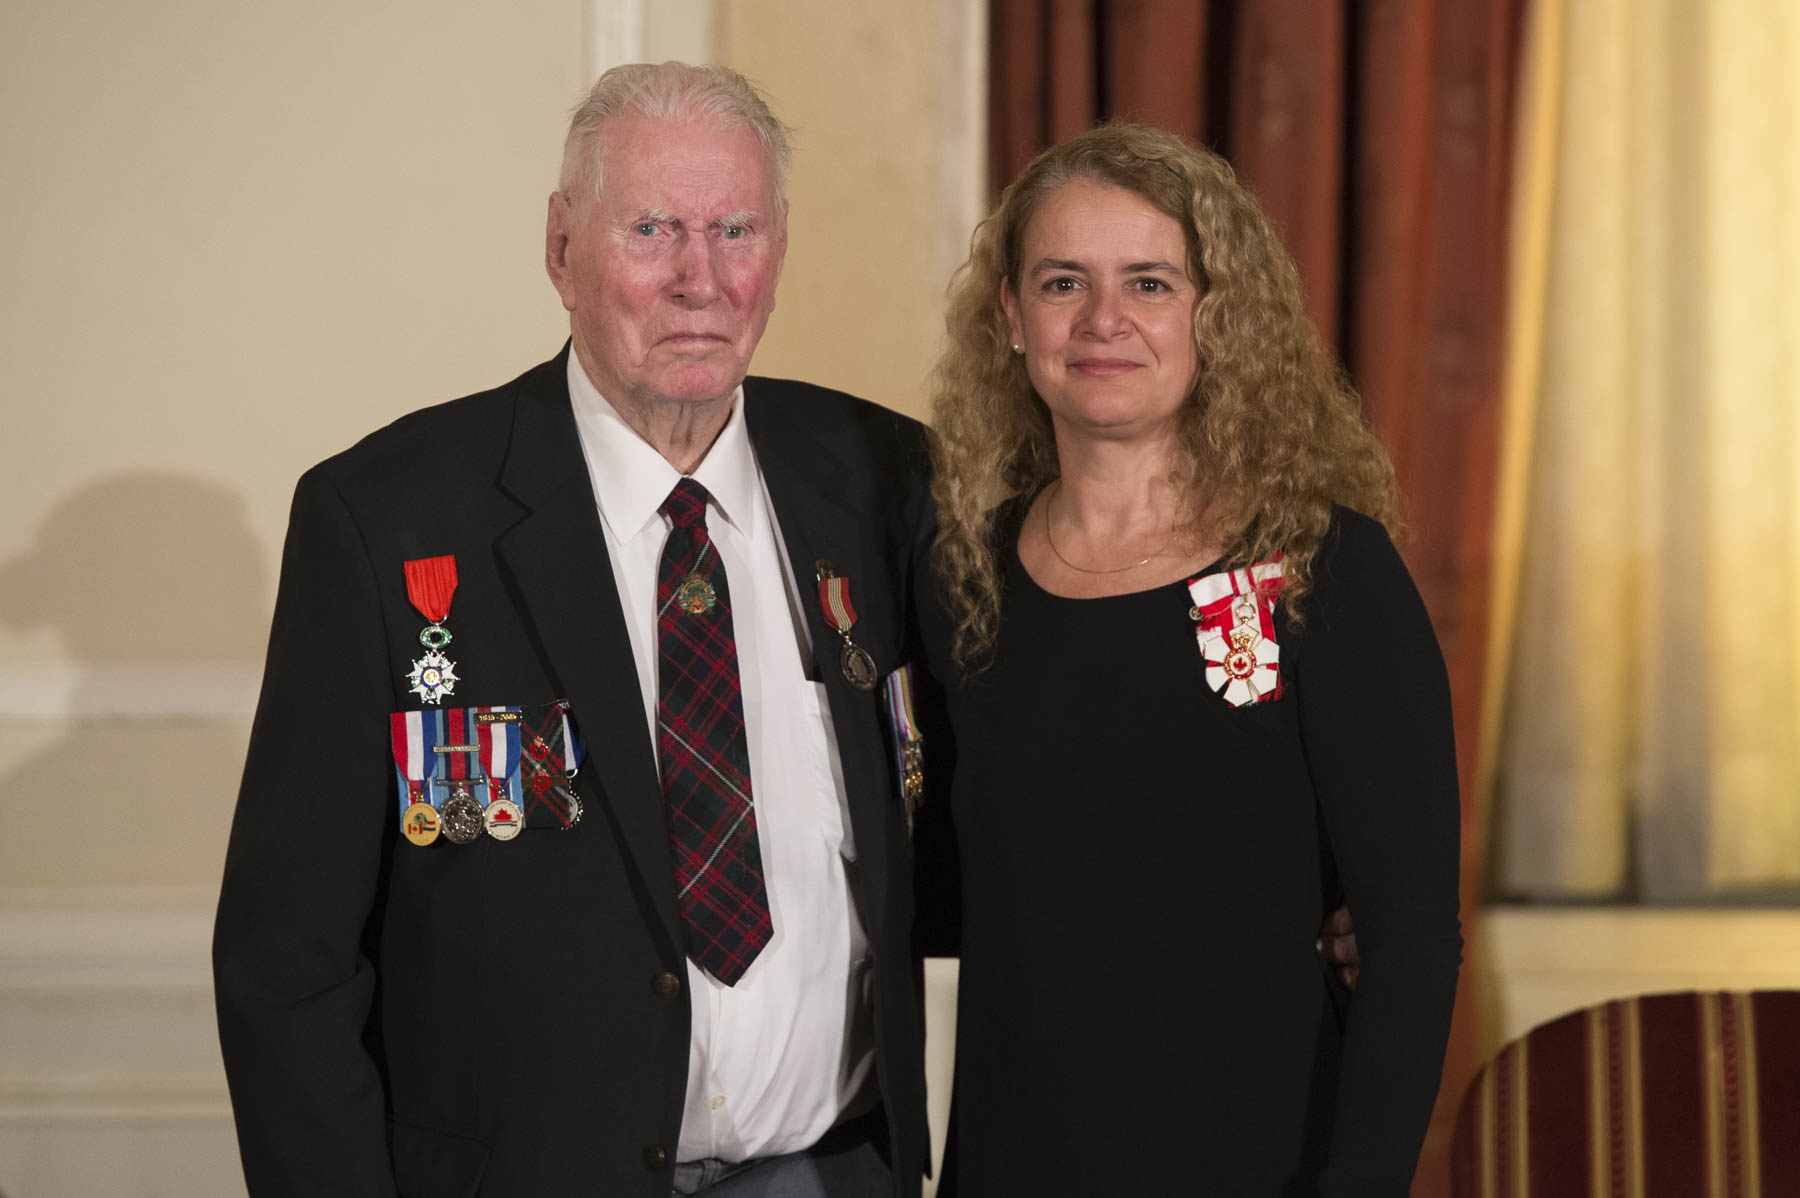 For more than 50 years, Second World War veteran Joseph Sullivan has worked extensively to have veterans recognized for their contributions. He regularly brings together fellow surviving members of the Stormont, Dundas and Glengarry Highlanders for reunions, where they can share memories and pay tribute to their fallen comrades-in-arms.